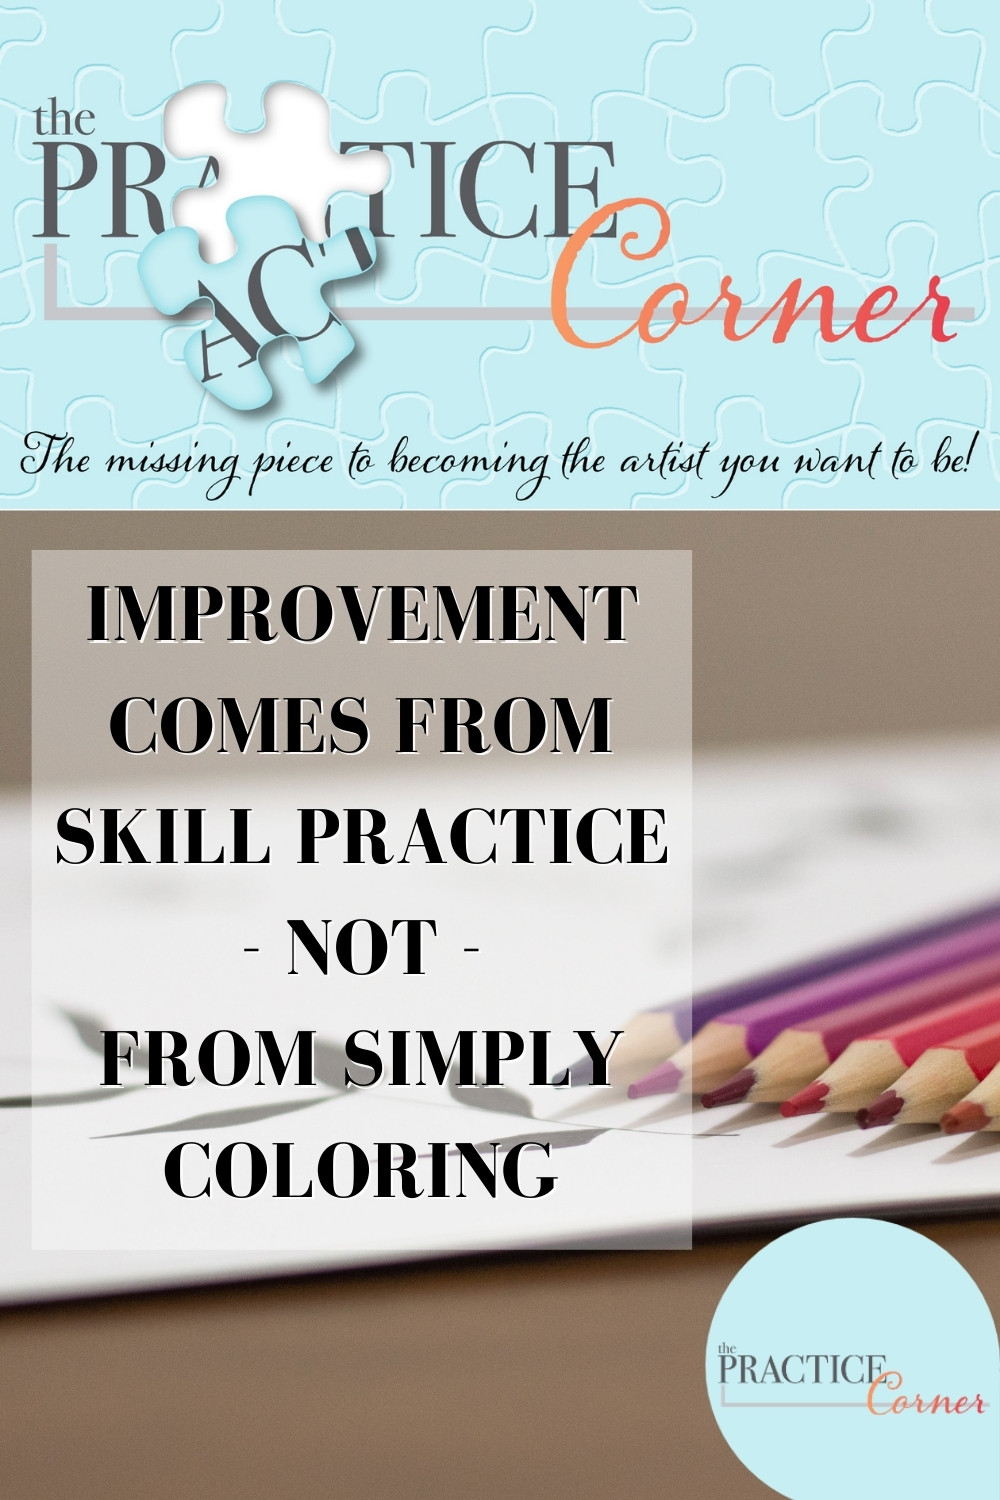 Improve your coloring with skills based practice. | The Practice Corner | #howtoimproveyourcoloring #coloredpencilpractice #copicmarkerpractice